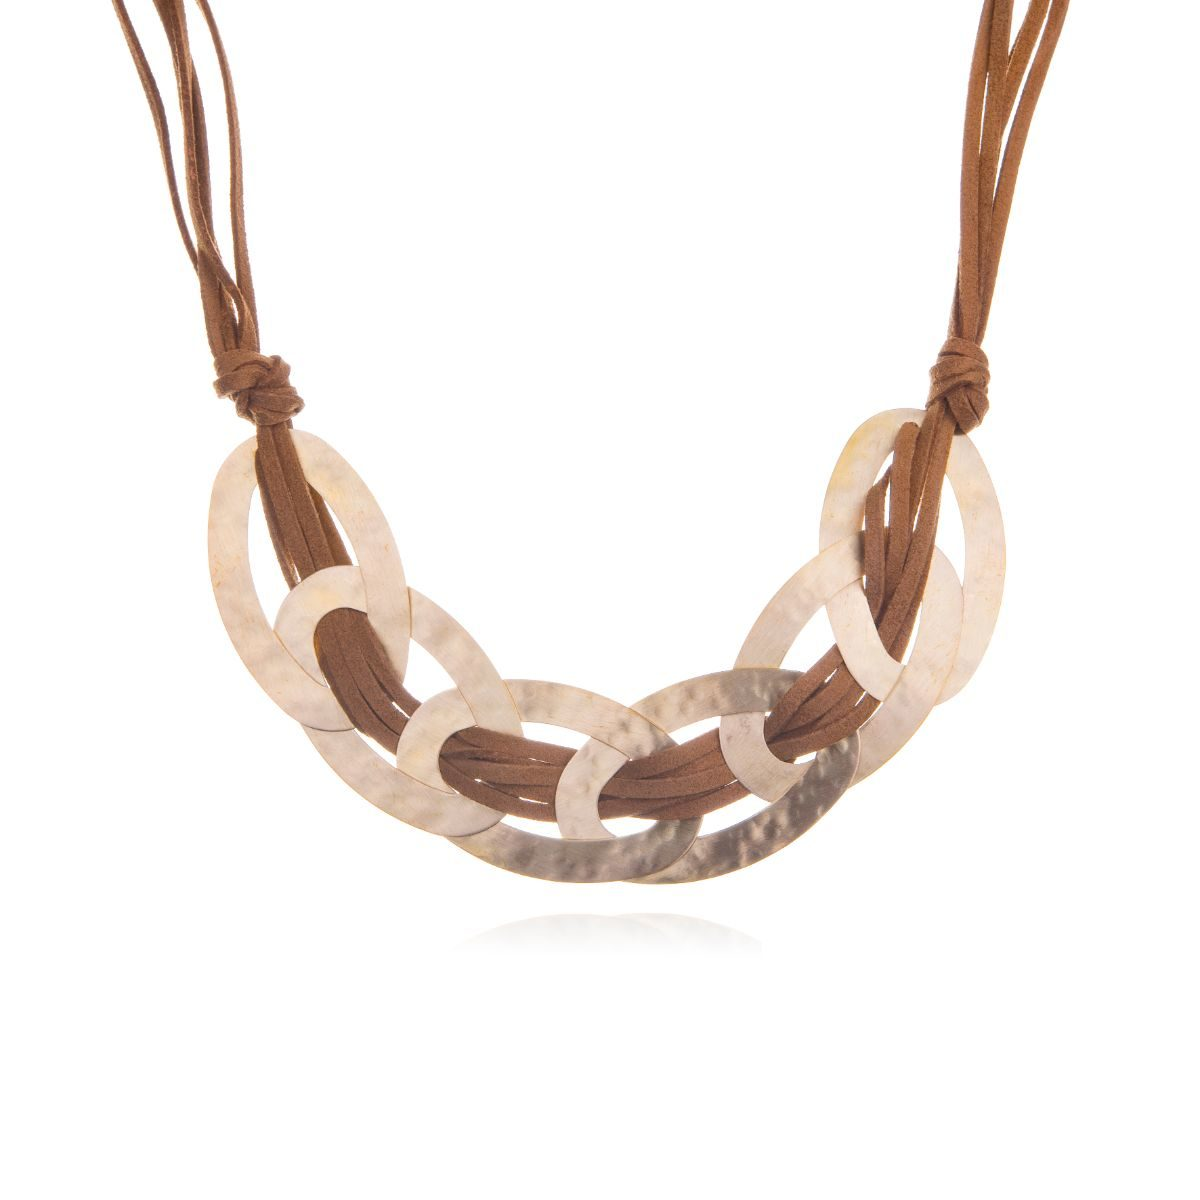 Barna short camel suede necklace with gold-plated brass ovals intertwined with the suede